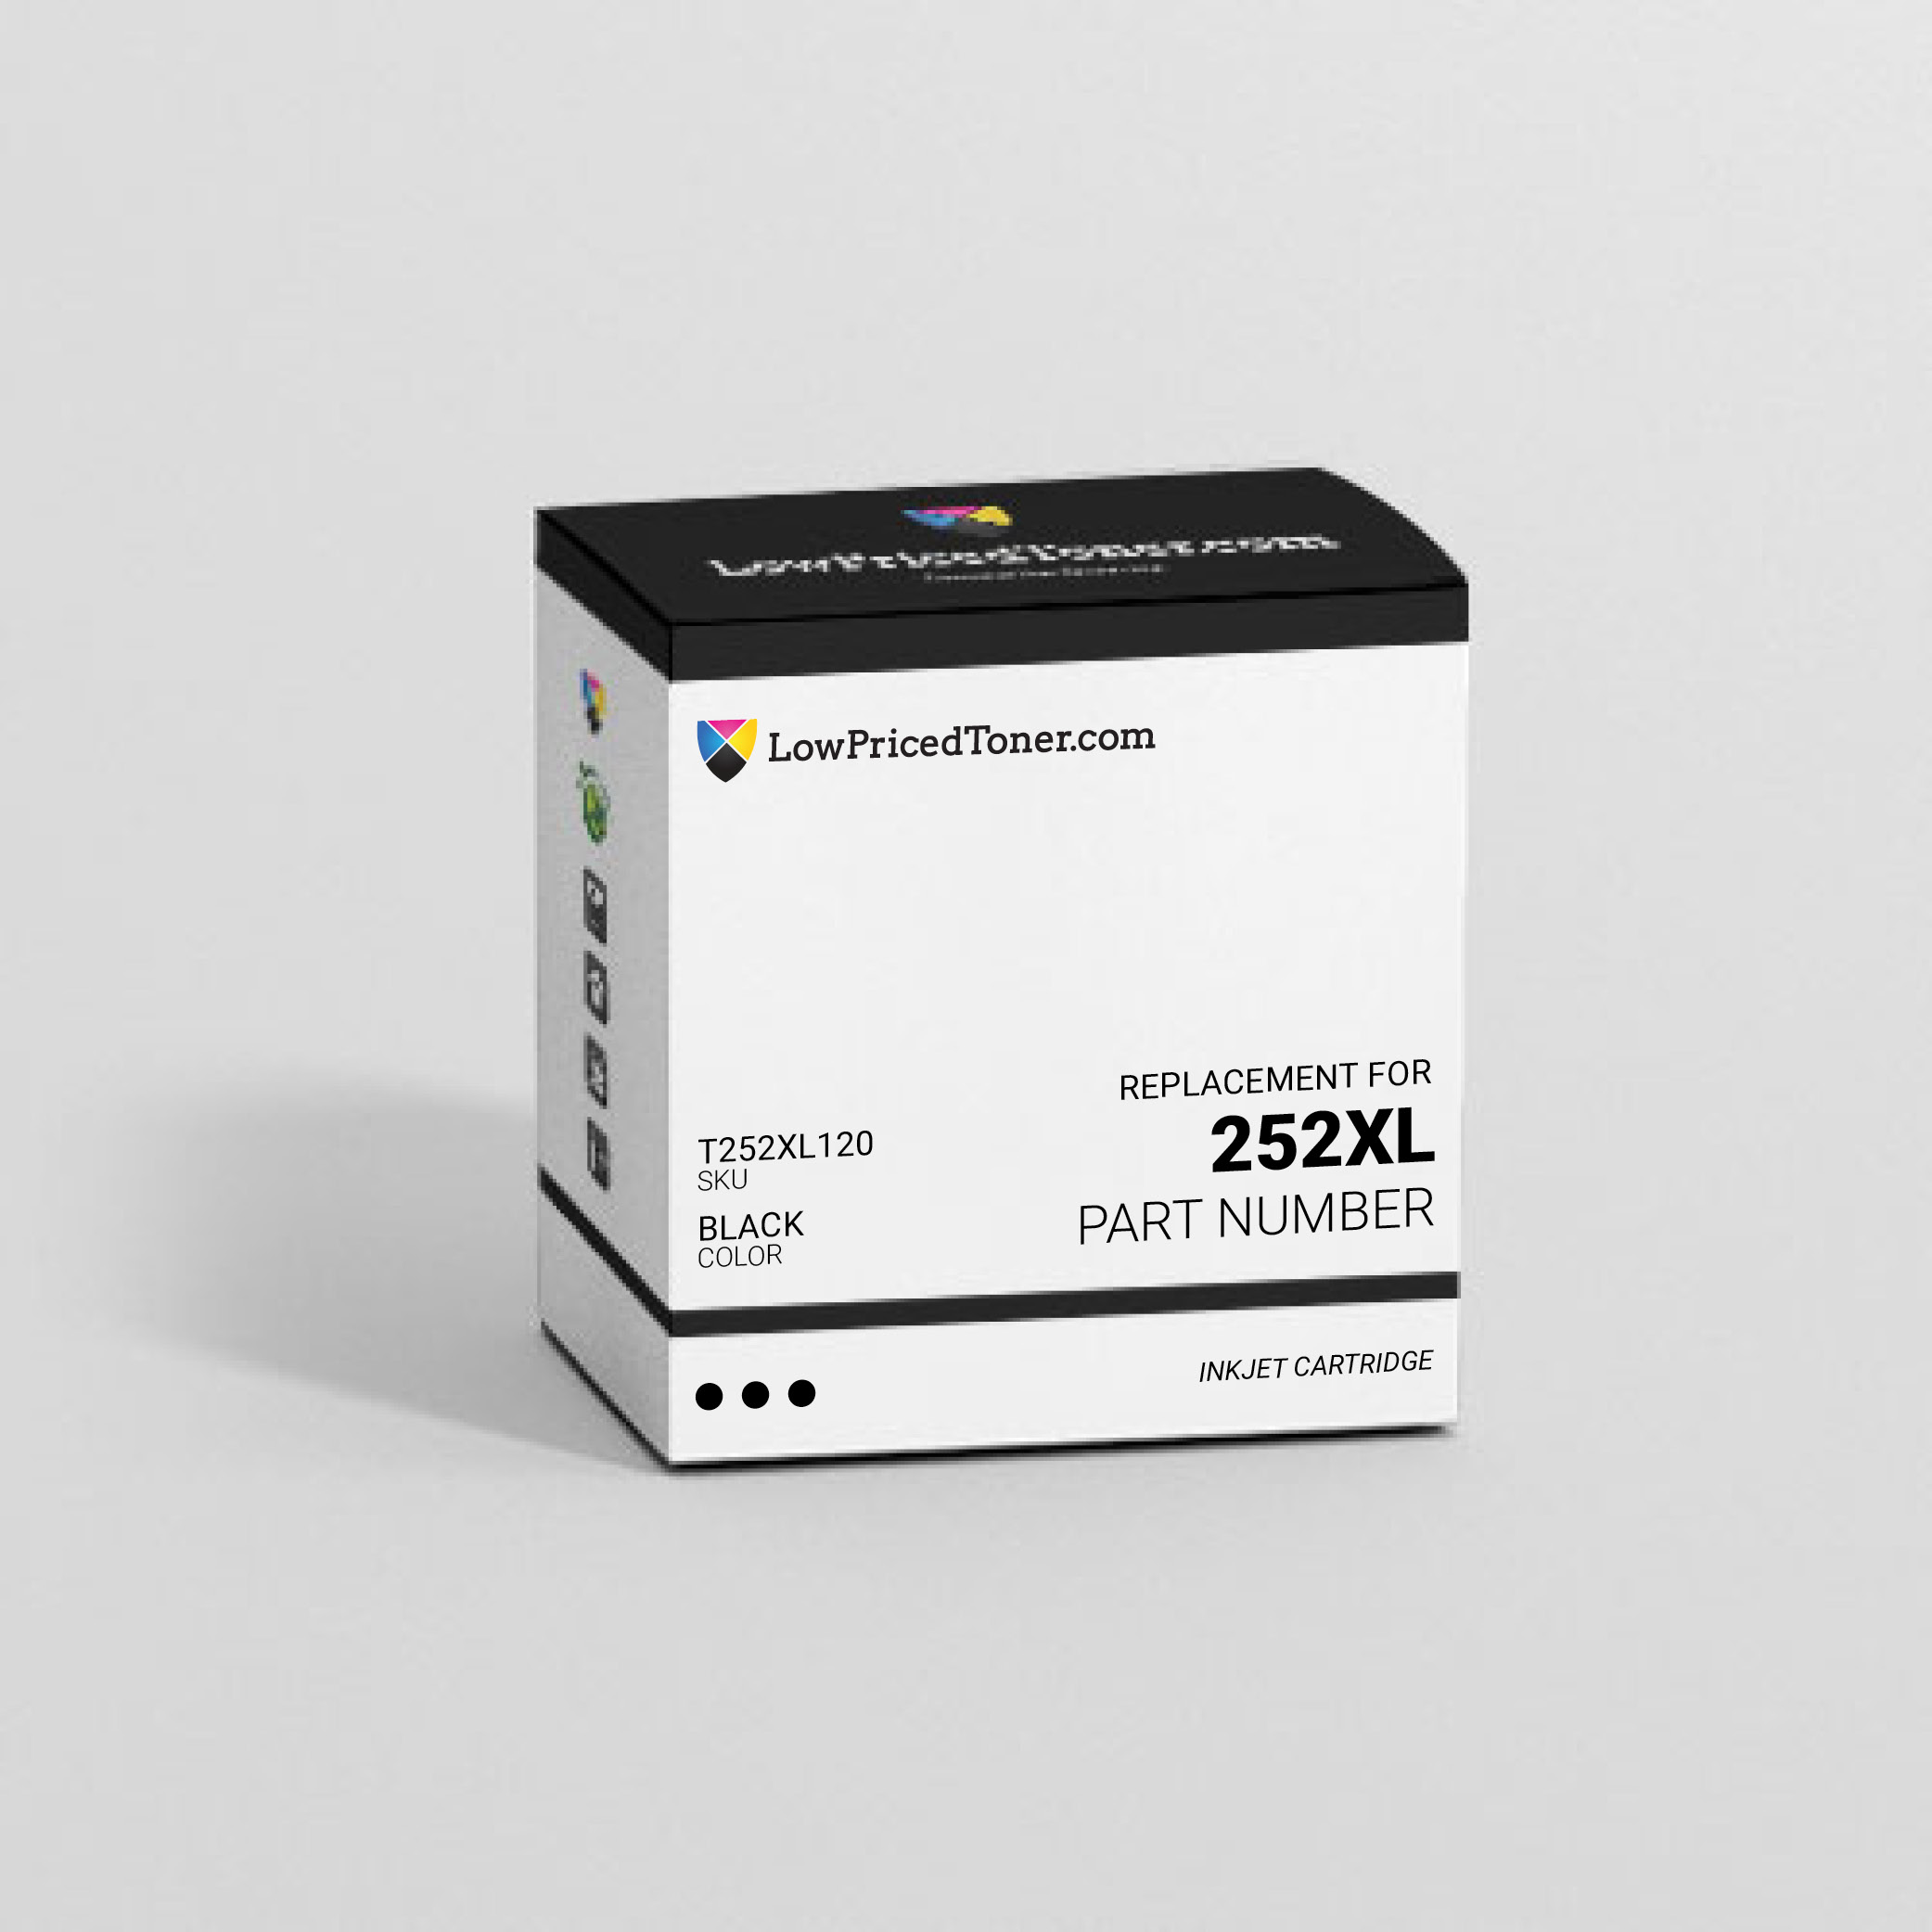 Epson T252XL120 252XL Remanufactured Black Ink Cartridge High Yield